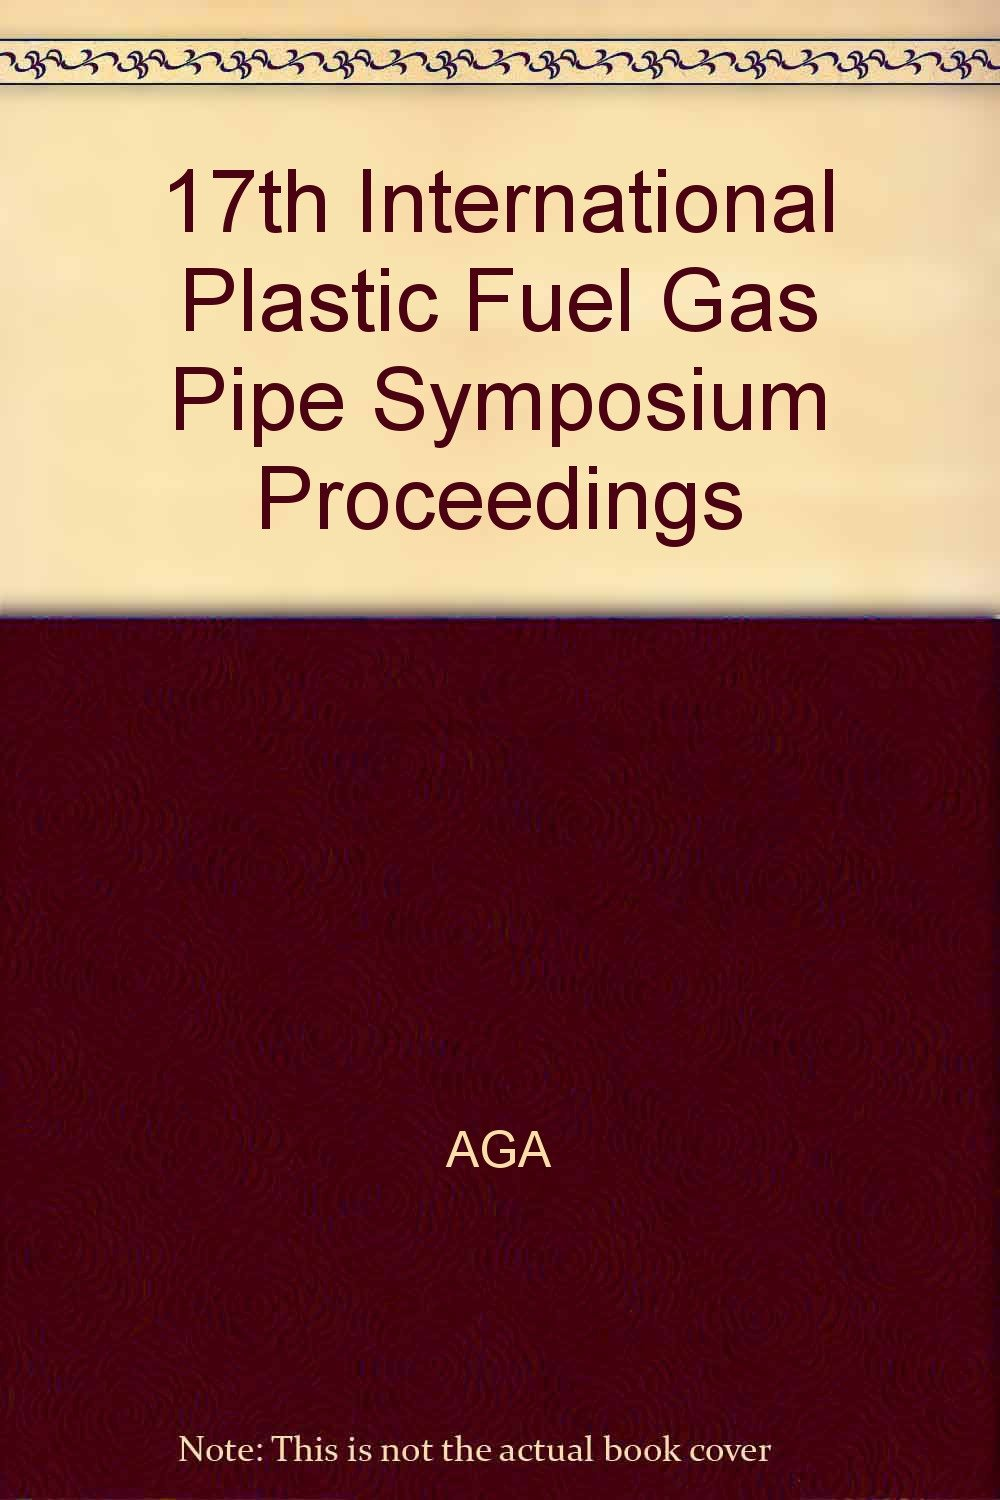 Download 17th International Plastic Fuel Gas Pipe Symposium Proceedings ebook